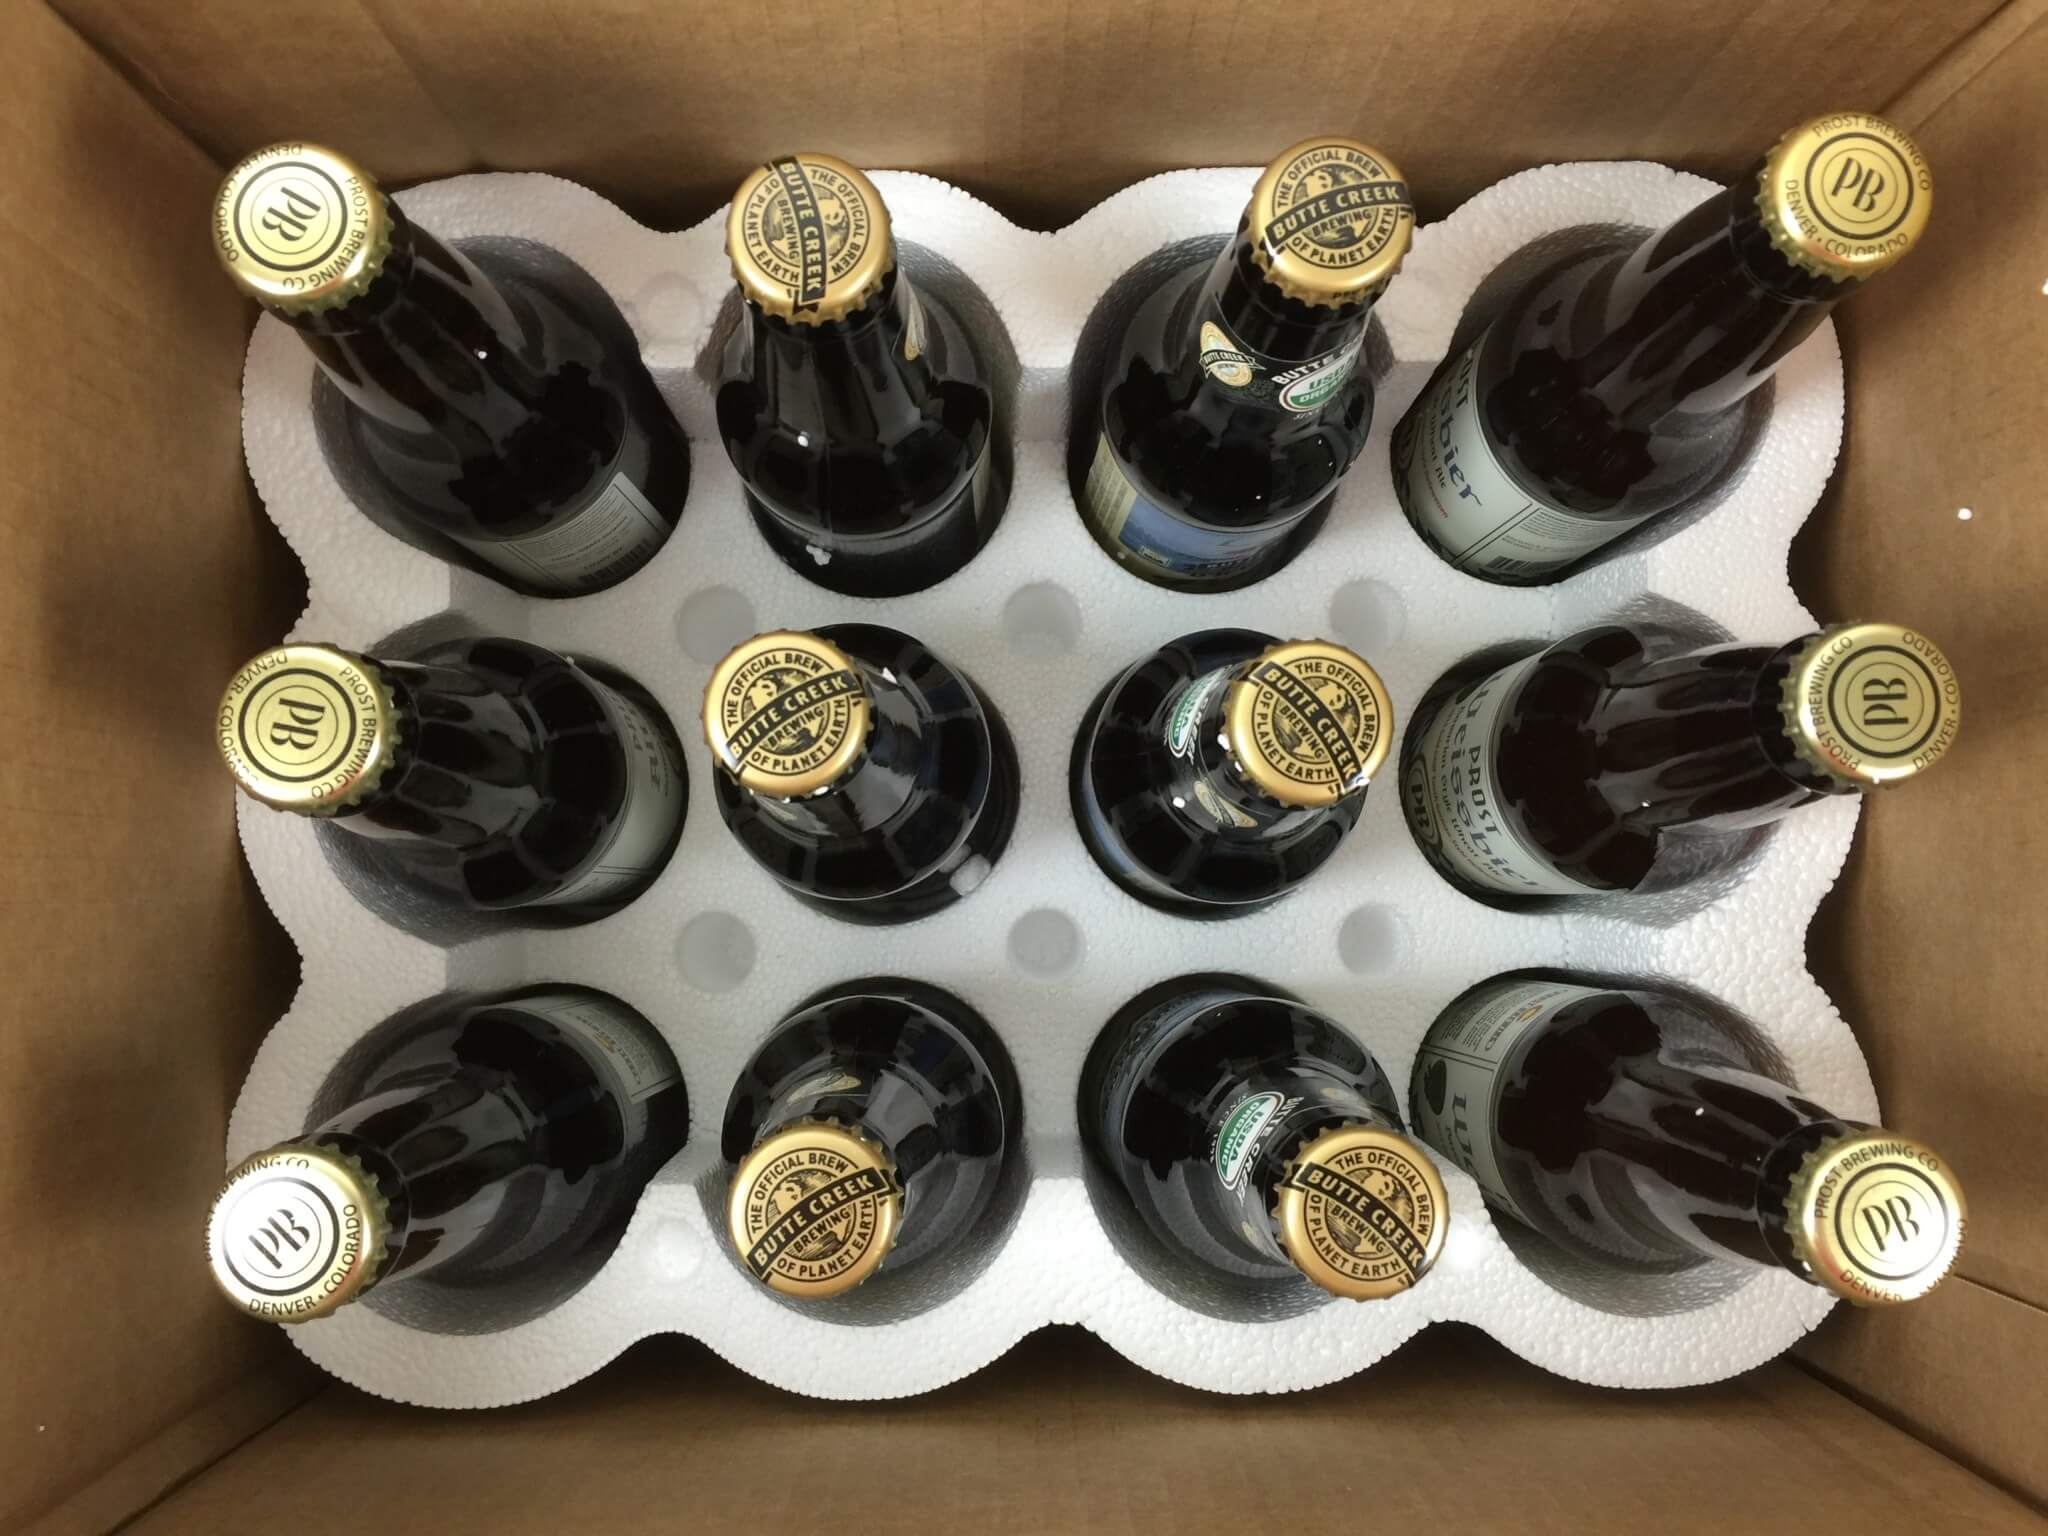 Craft Beer Club Box May 2016 unboxed